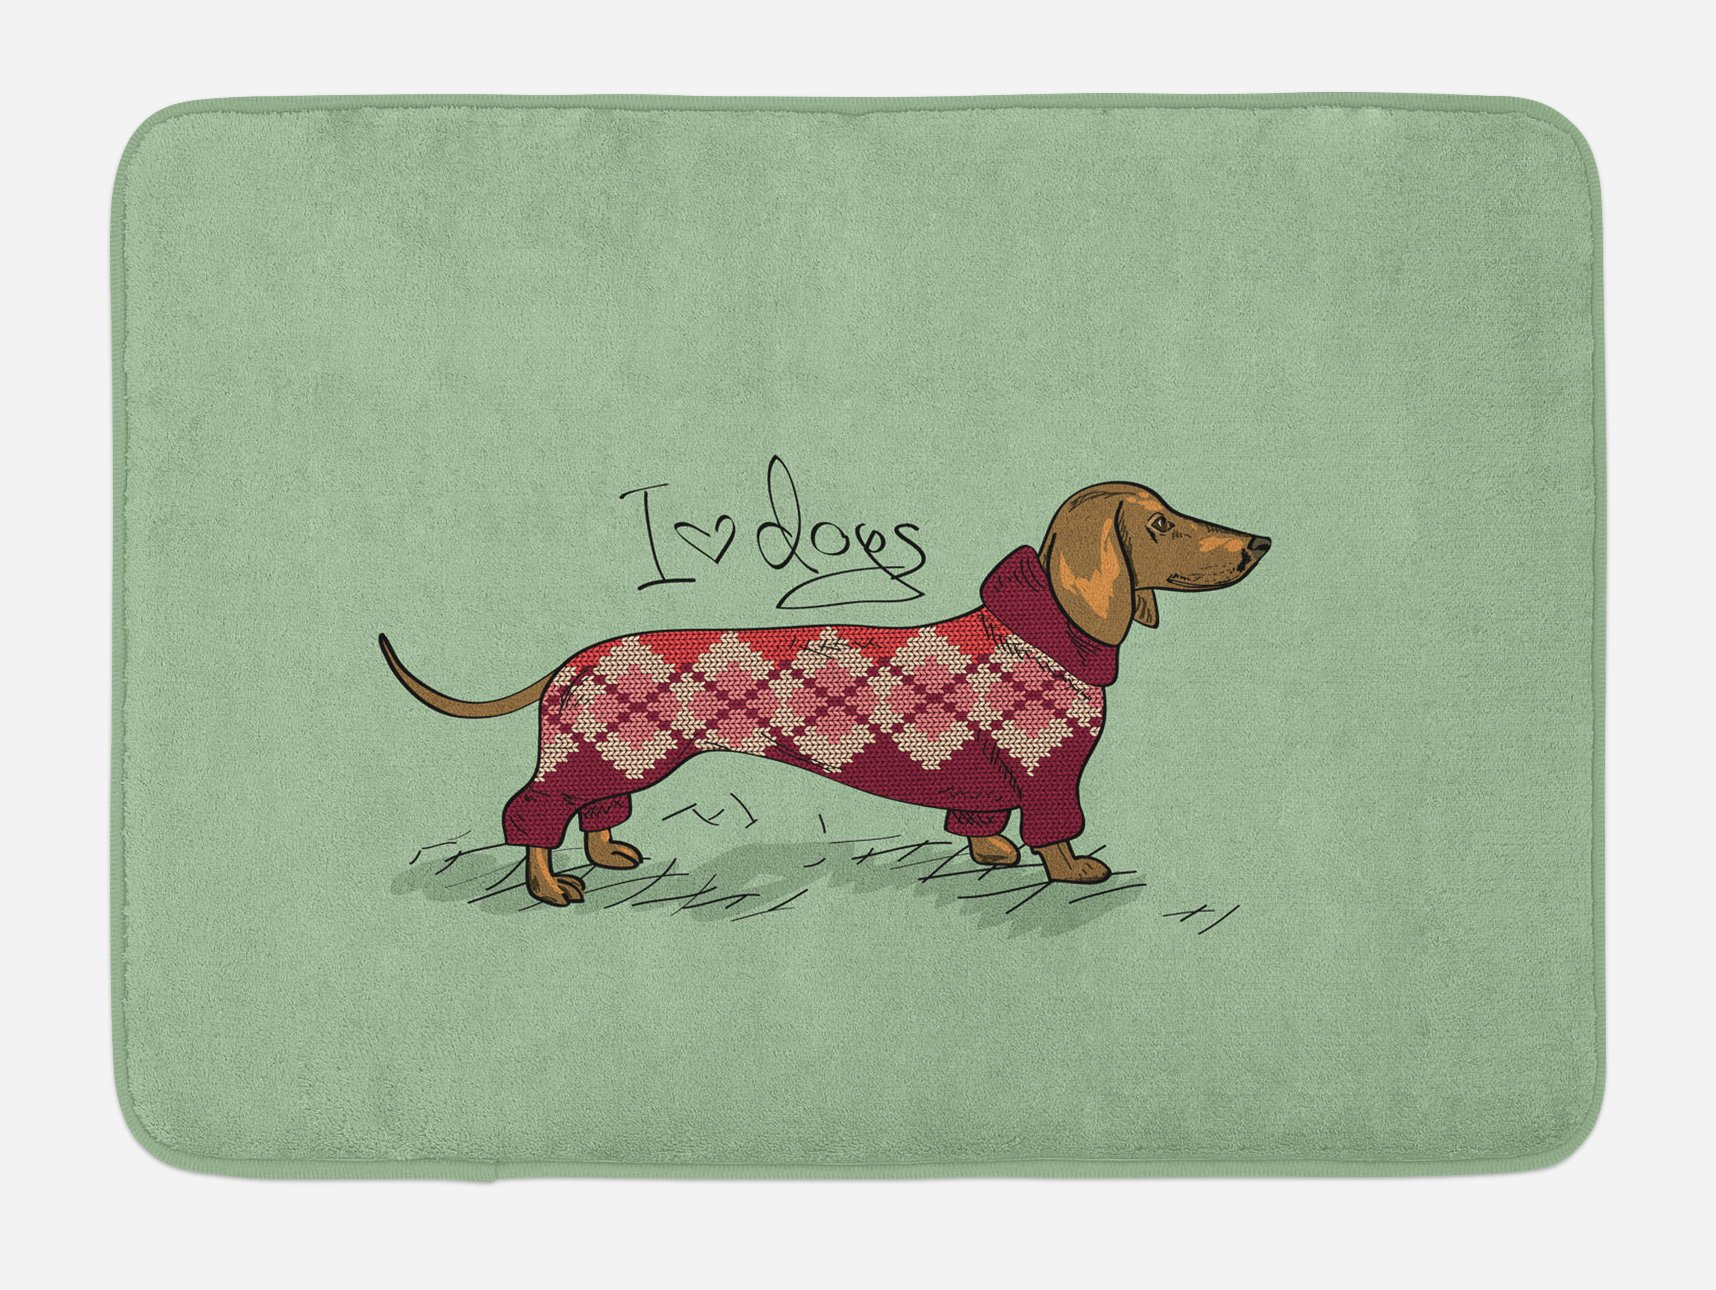 Ambesonne Dachshund Bath Mat, Cute Dog in Knitted Sweater Design Detailed Colorful Cartoon Style Animal Pattern, Plush Bathroom Decor Mat with Non Slip Backing, 29.5 W X 17.5 W Inches, Multicolor